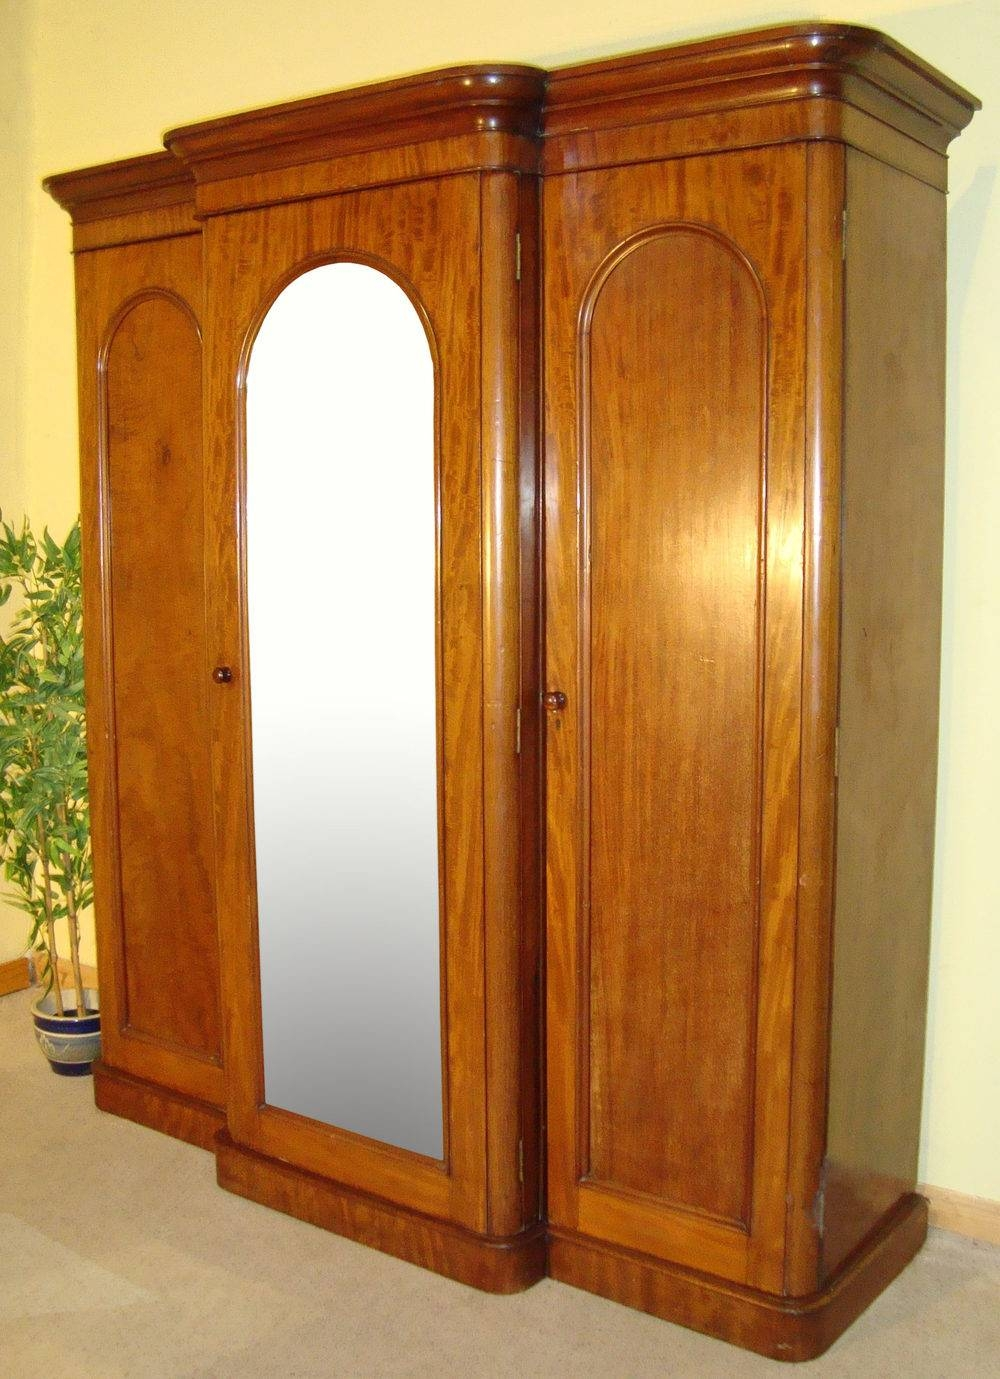 Victorian Mahogany Three Door Breakfront Wardrobe - Antiques Atlas throughout Victorian Mahogany Breakfront Wardrobe (Image 26 of 30)